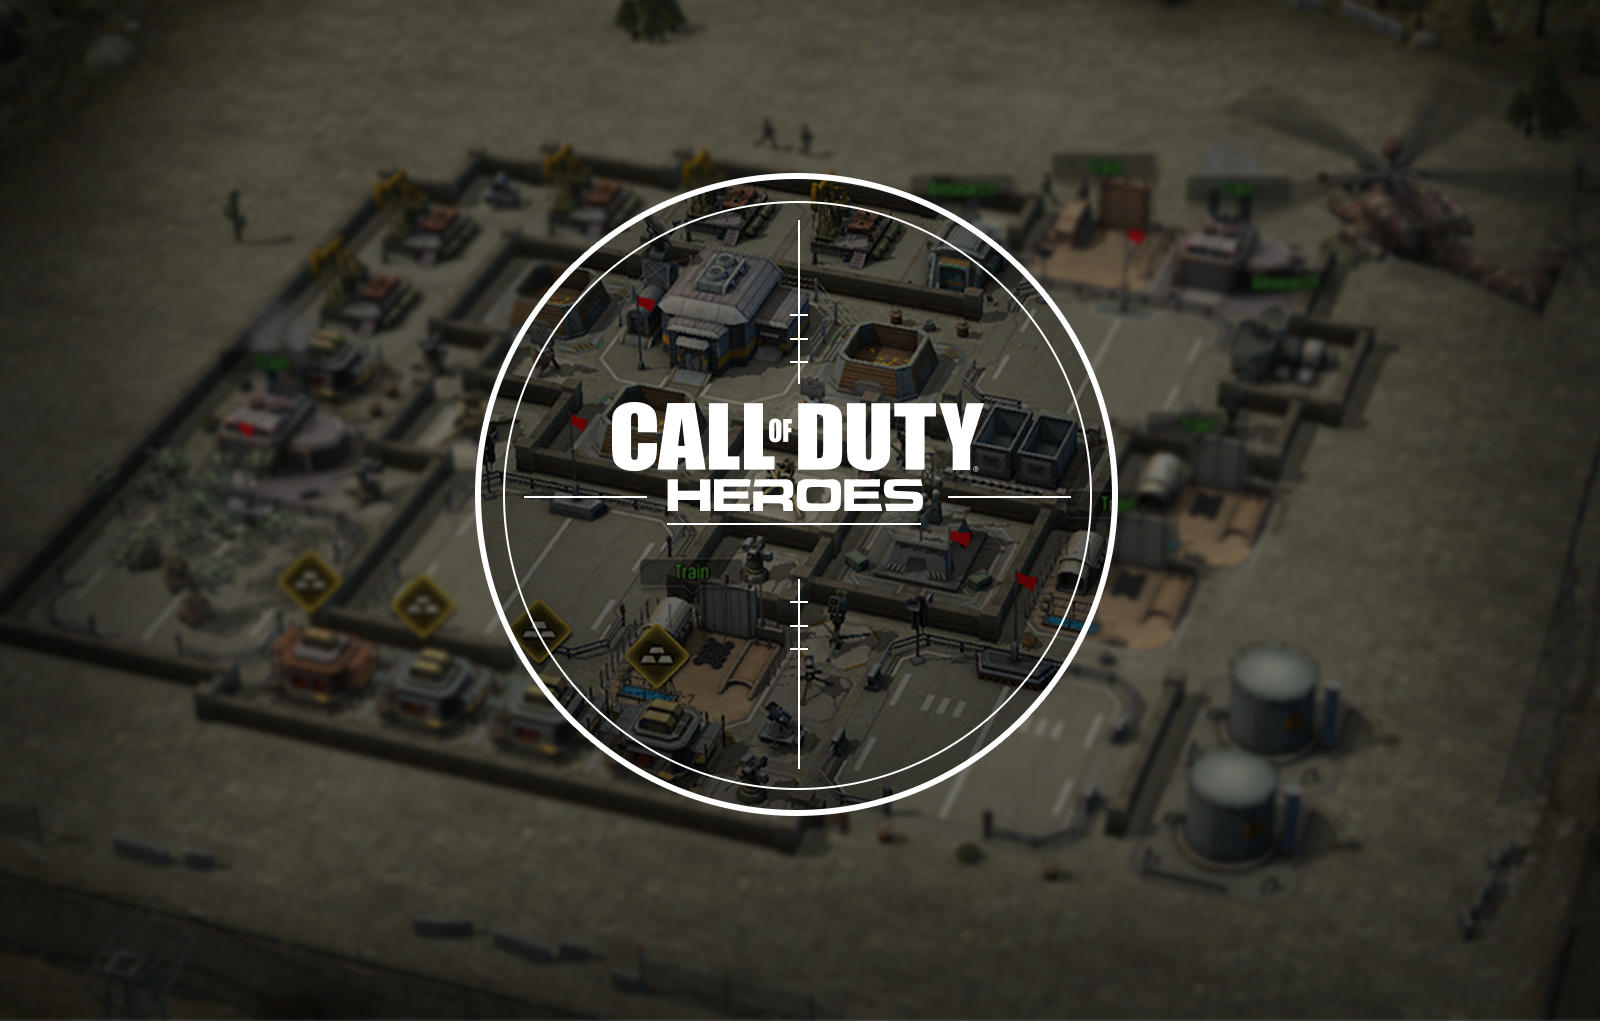 Call of Duty: Heroes is Clash of Clans with Call of Duty characters - VG247